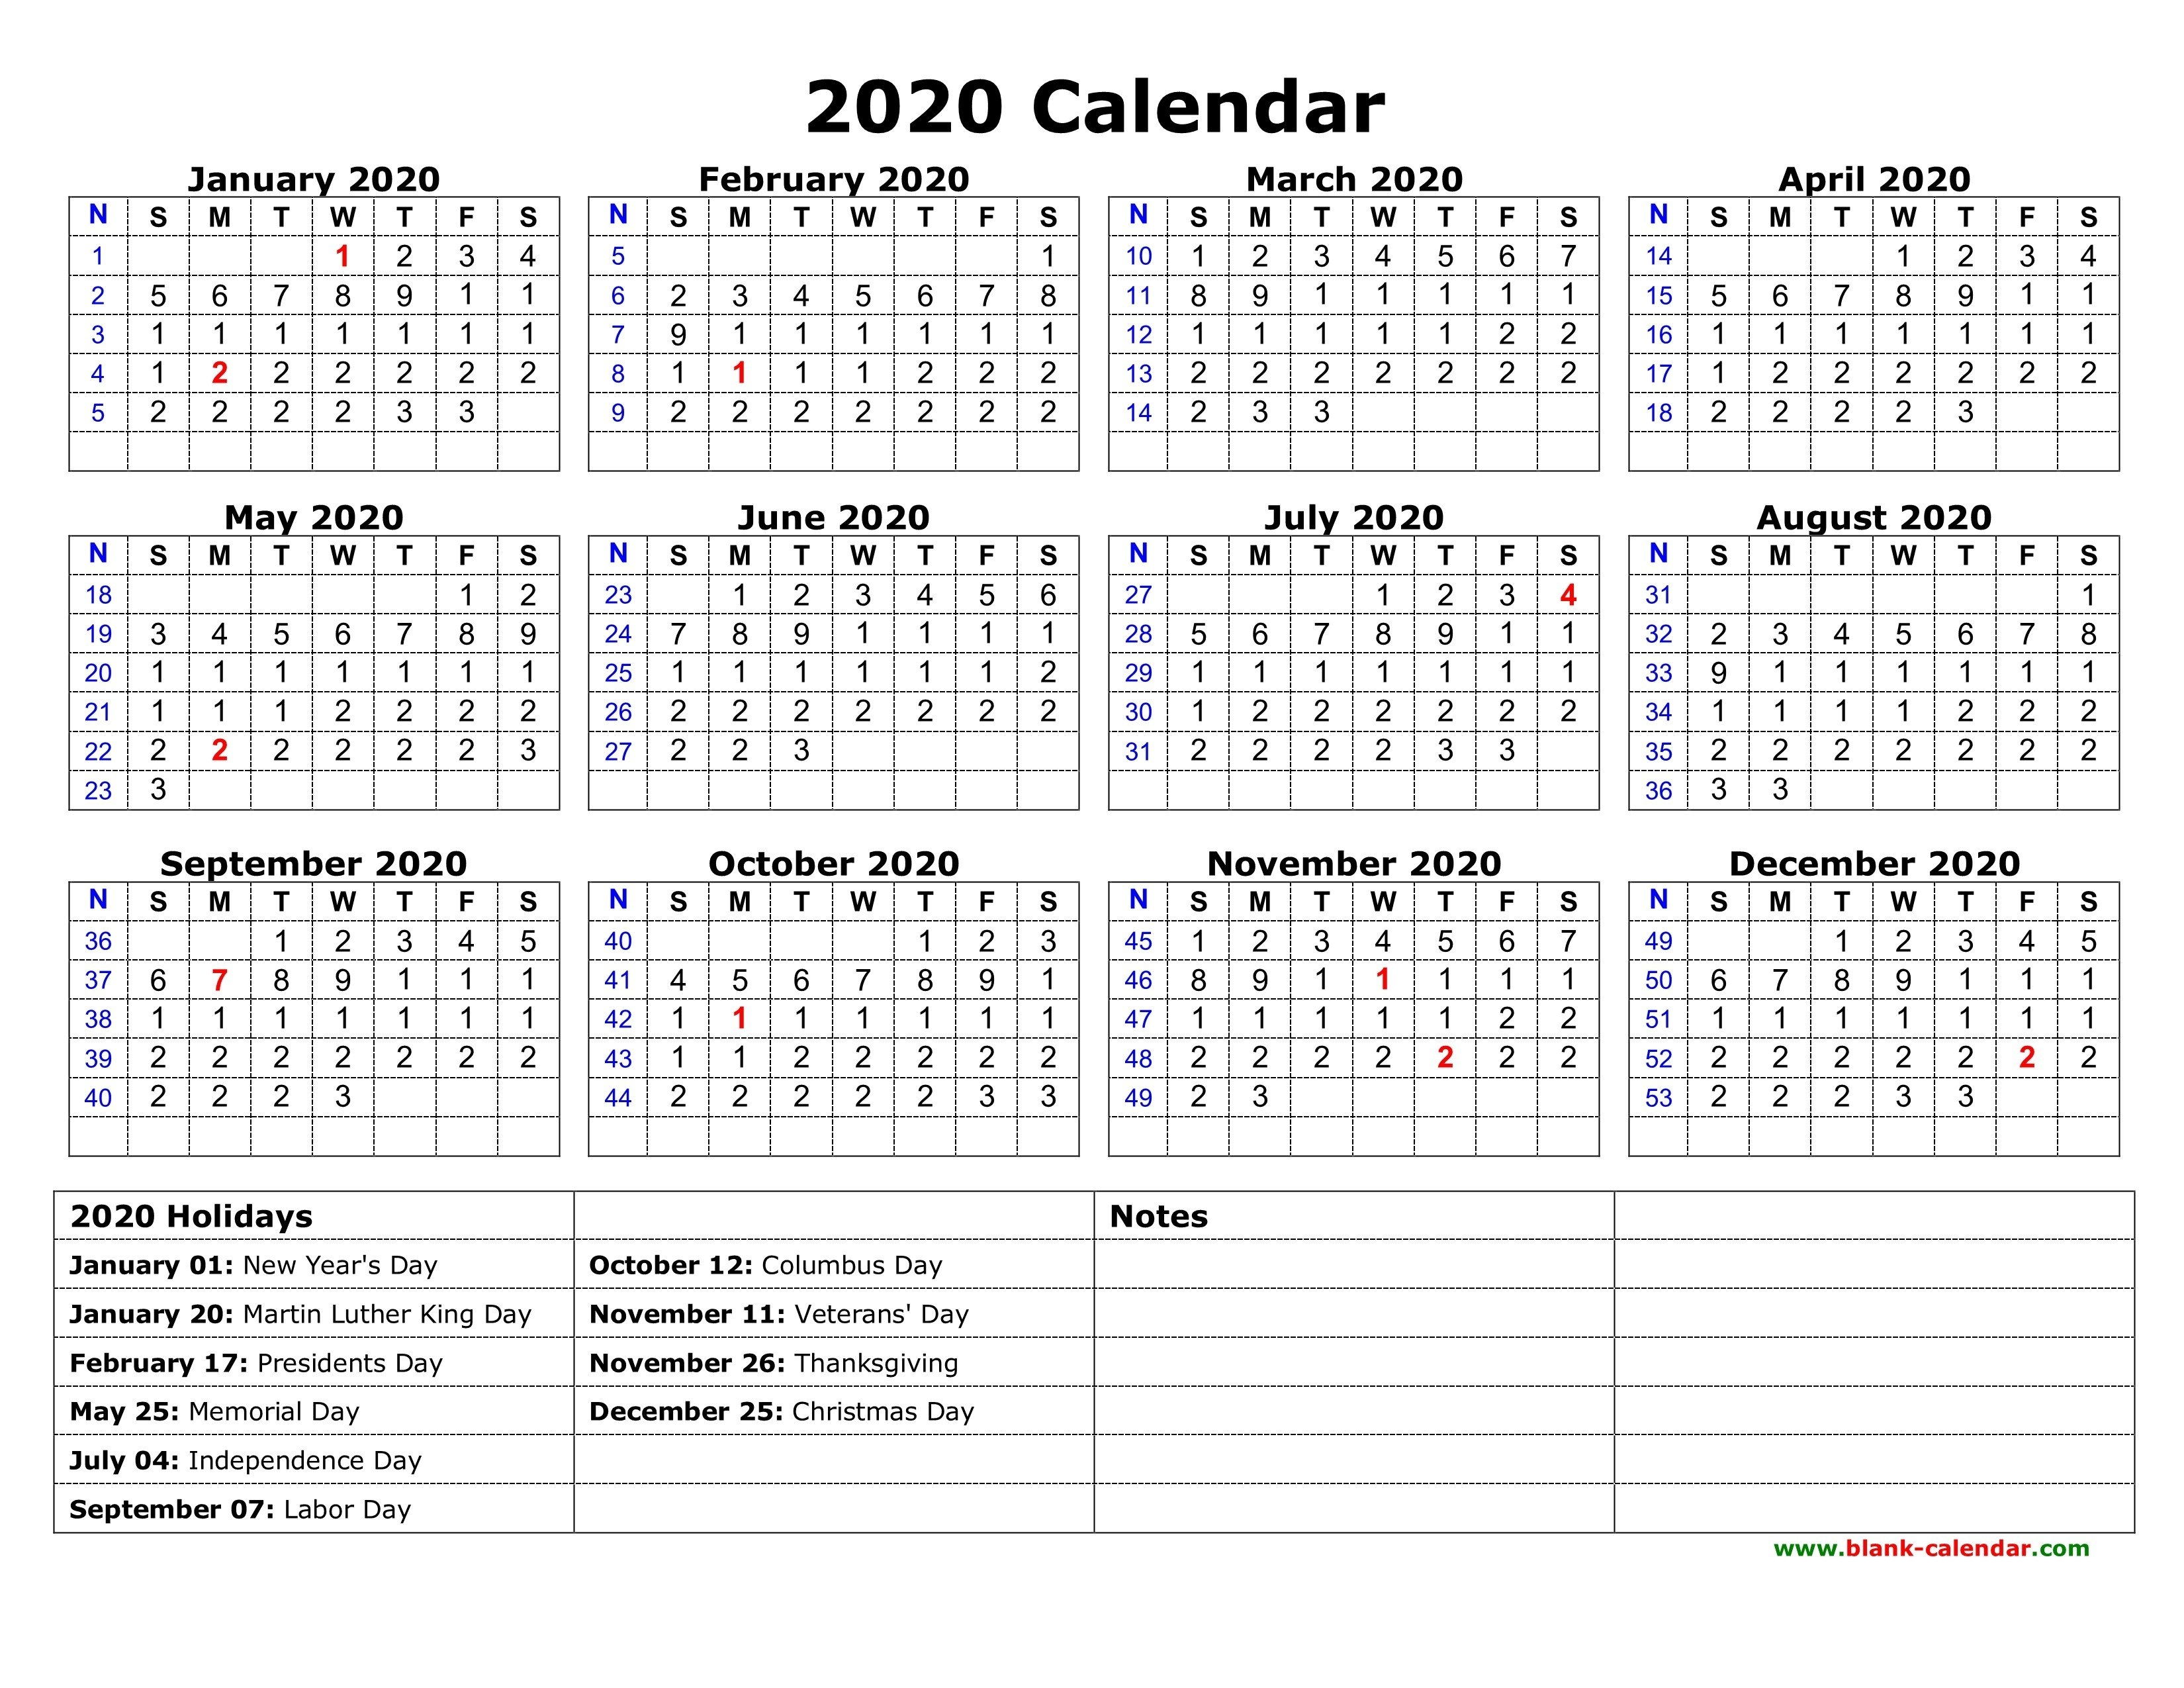 2020 Calendar Template With Holidays Printable Free Download Fcps Calendar 2019 20